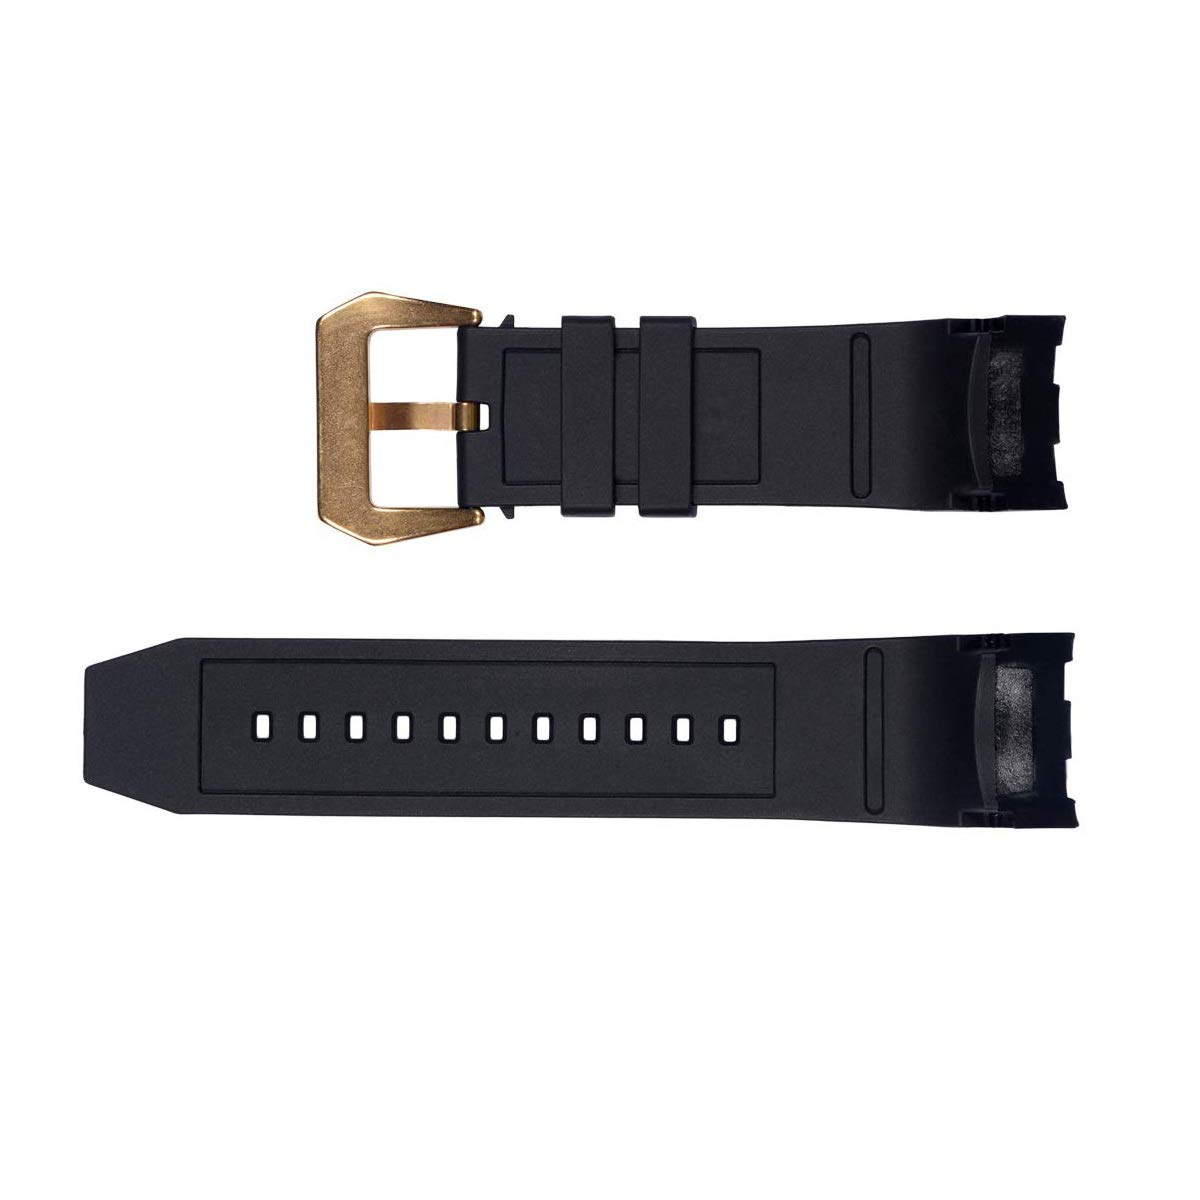 Vicdason for Invicta Pro Diver Watch Bands Replacement Strap with Bukcle Metal Inserts - Black Rubber Silicone Invicta Watch Strap by Vicdason (Image #2)